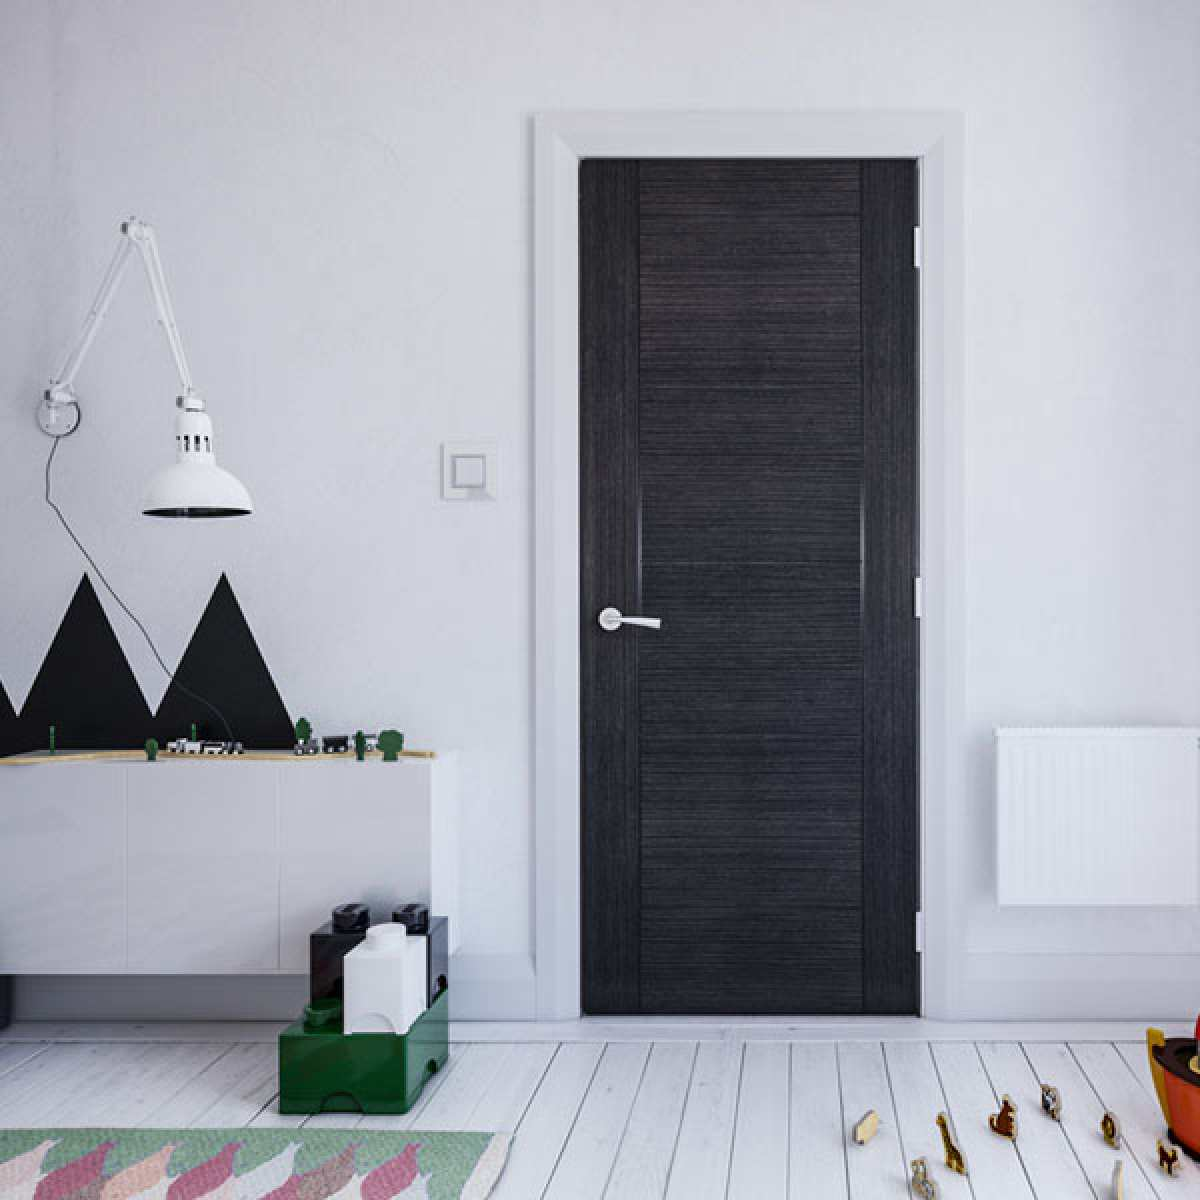 montreal dark grey ash lifestyle websters Image by Websters Timber